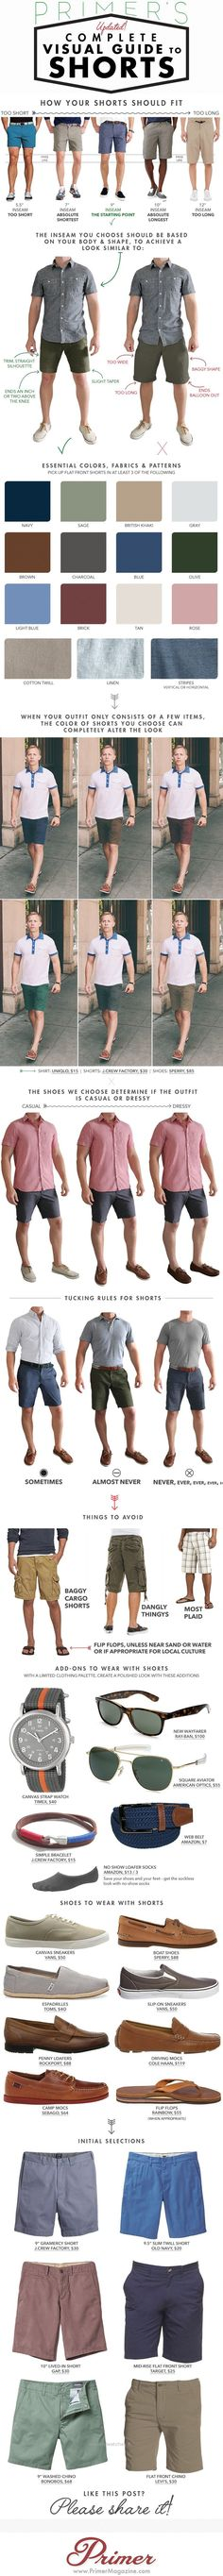 Stay cool and look smart this summer with our complete visual guide for all things shorts, covering fit and fabric to shoes and accessories. Like the Clif notes guide to men's summer fashion. Mode Outfits, Fashion Outfits, Fashion Tips, Fashion Trends, Style Fashion, Fashion Clothes, Fashion Ideas, Fashion Check, Swag Fashion